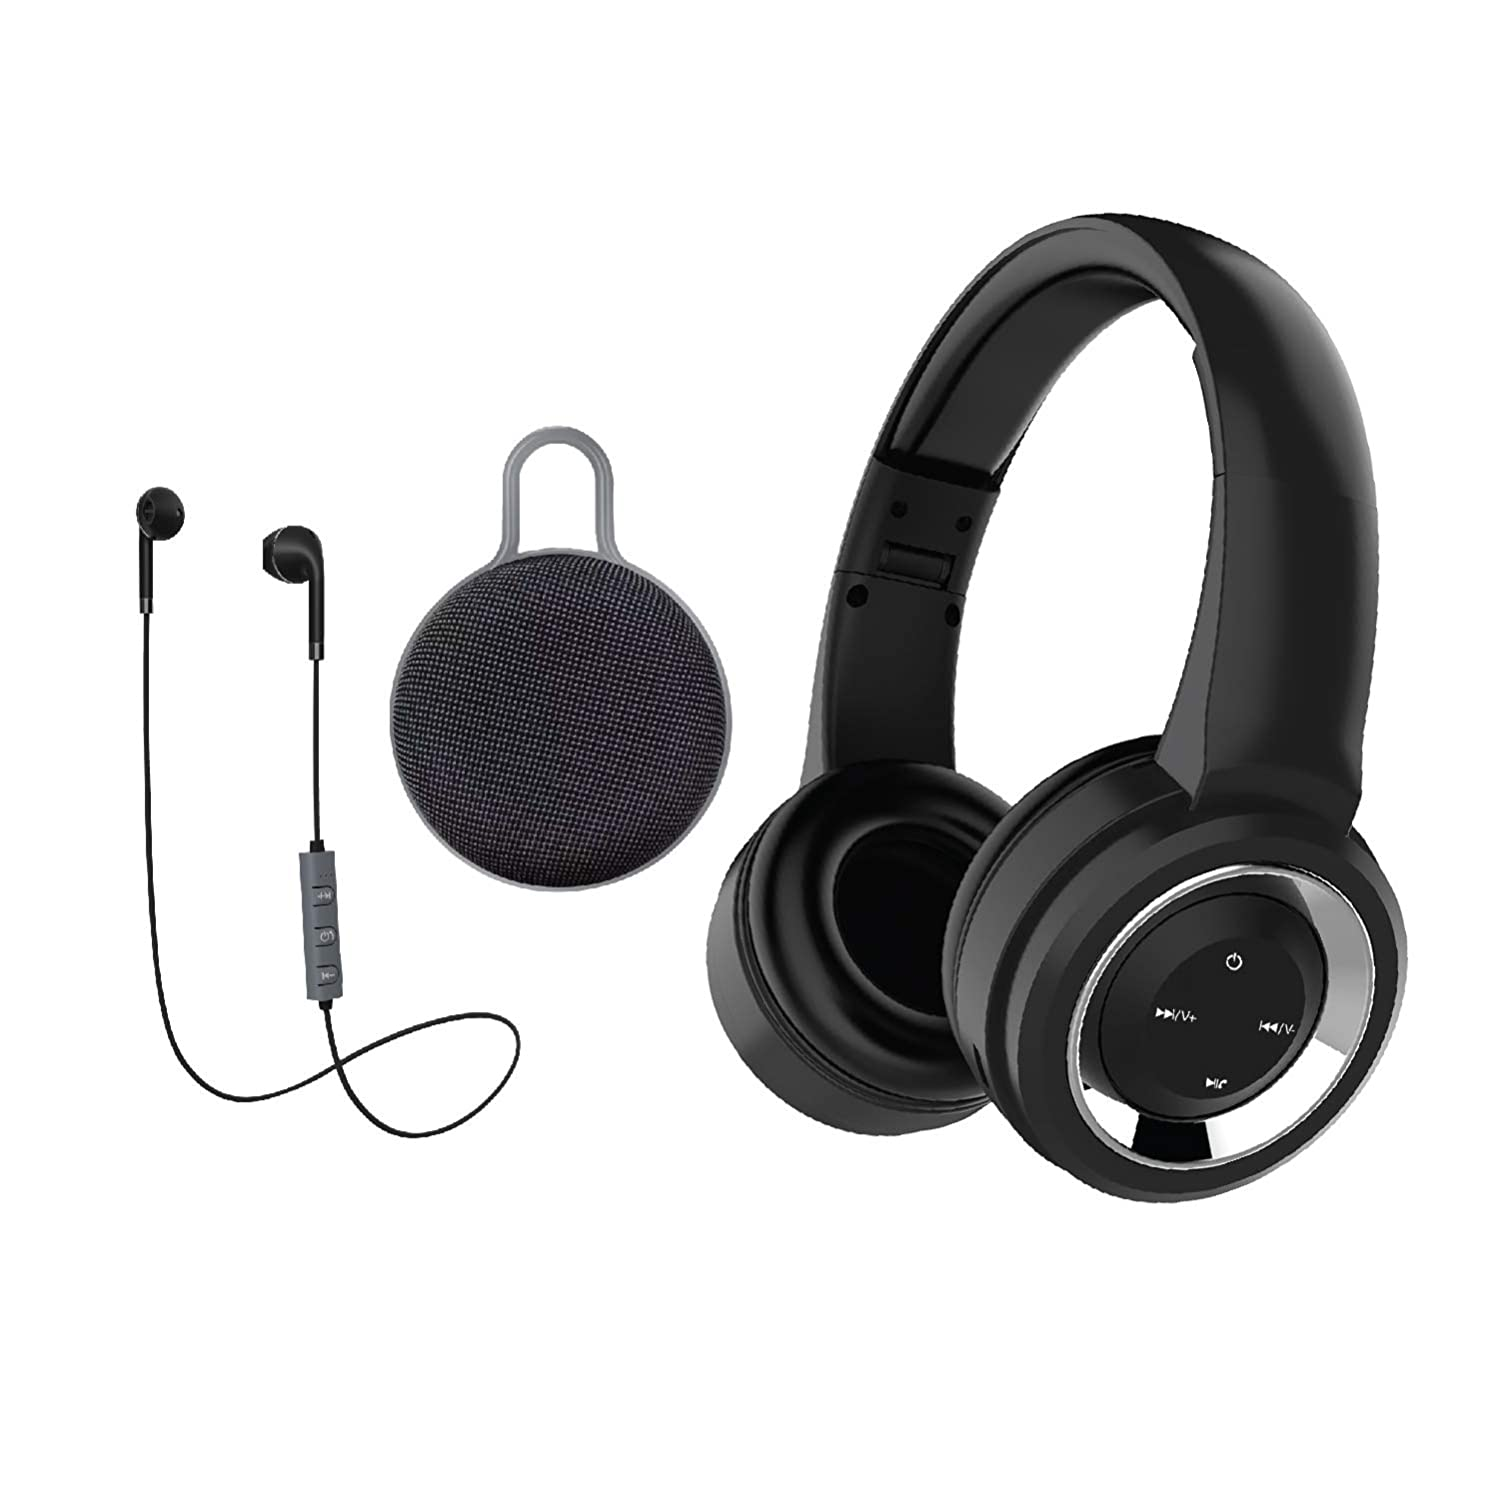 Gabba Goods 3 Piece Gift Set Premium LyriX Wireless Bluetooth Volume Control Over The Ear Comfort Padded Stereo Headphones | Earphones |Bluetooth Ear Buds & Stereo Speaker - Black